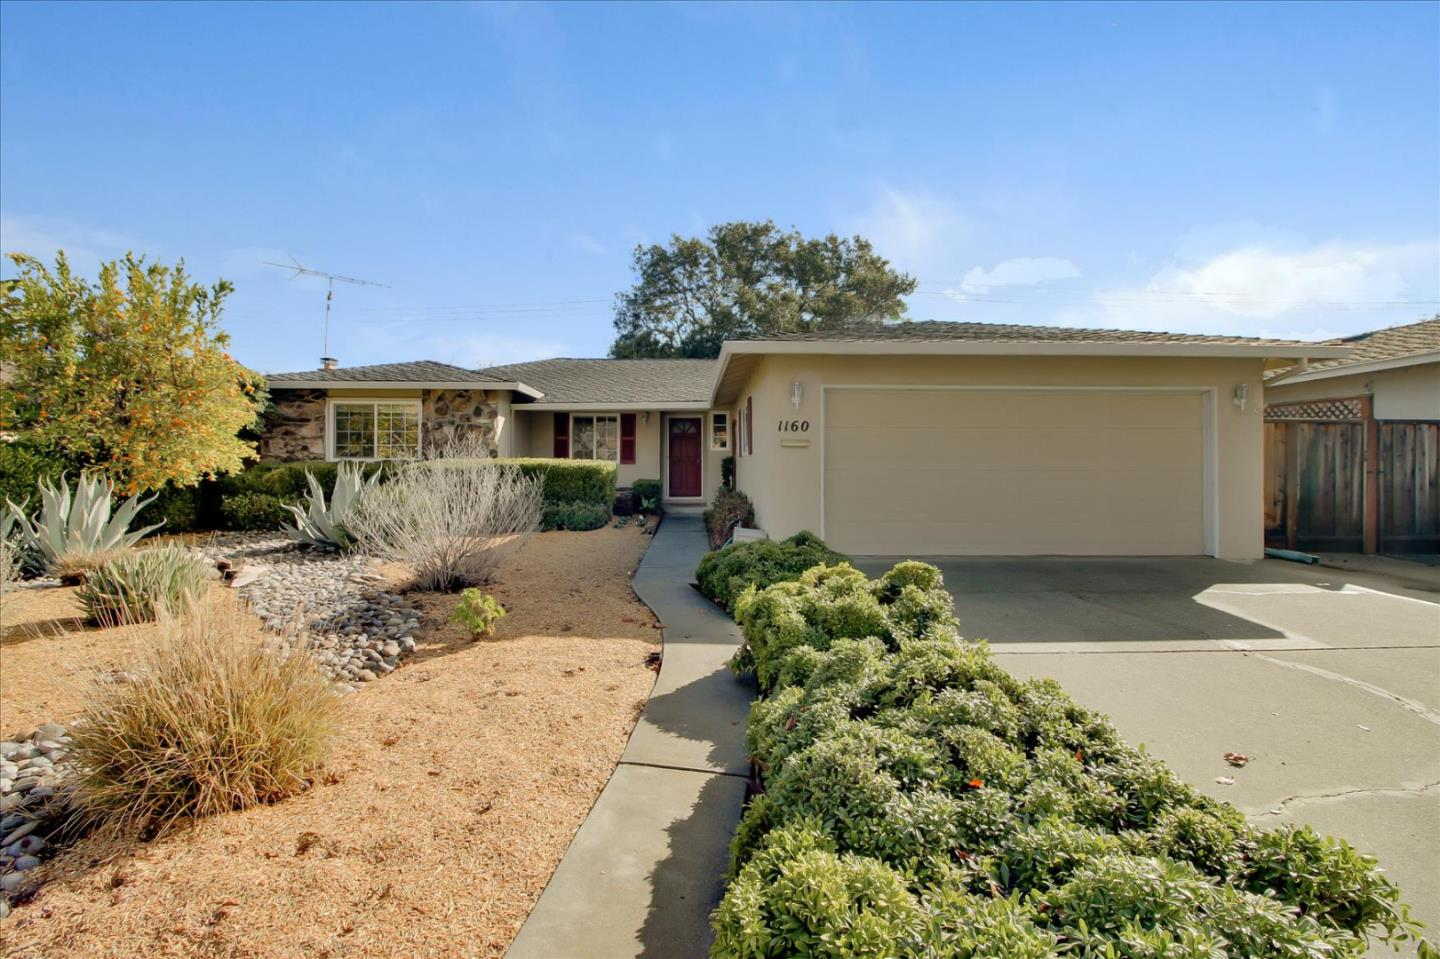 Photo of 1160 Creekwood DR, SAN JOSE, CA 95129